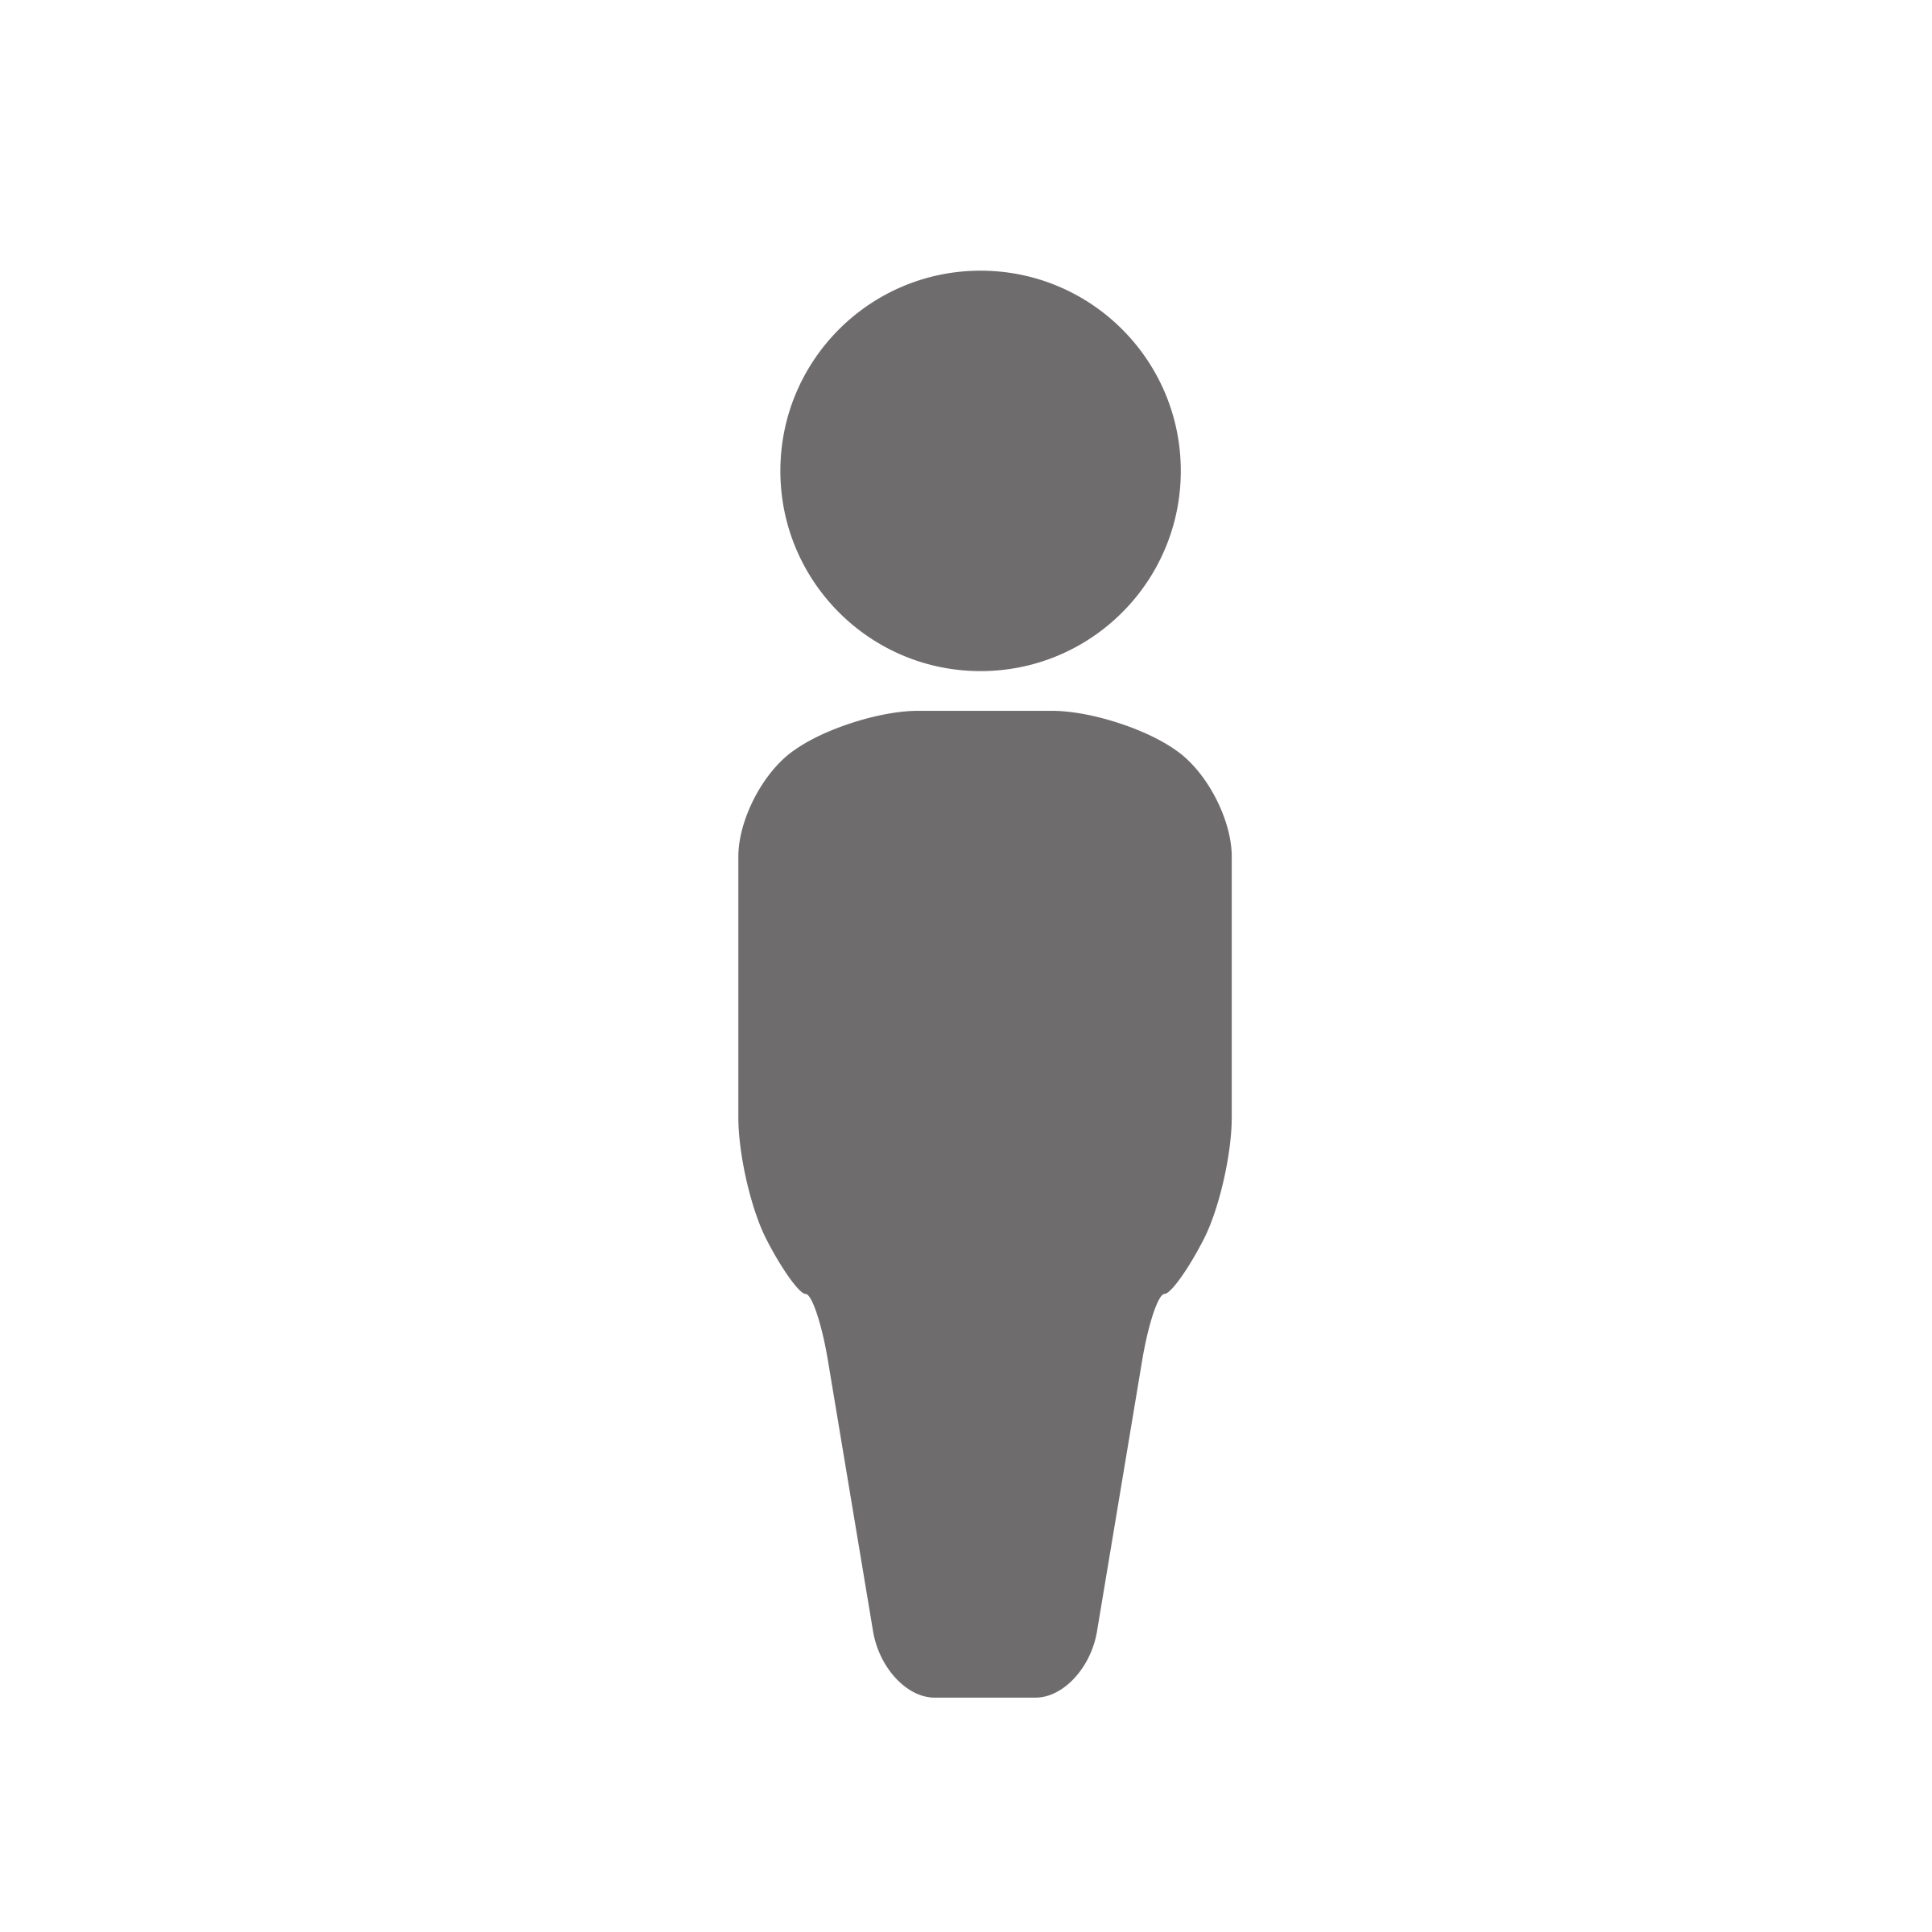 Man clipart simple, Man simple Transparent FREE for download.